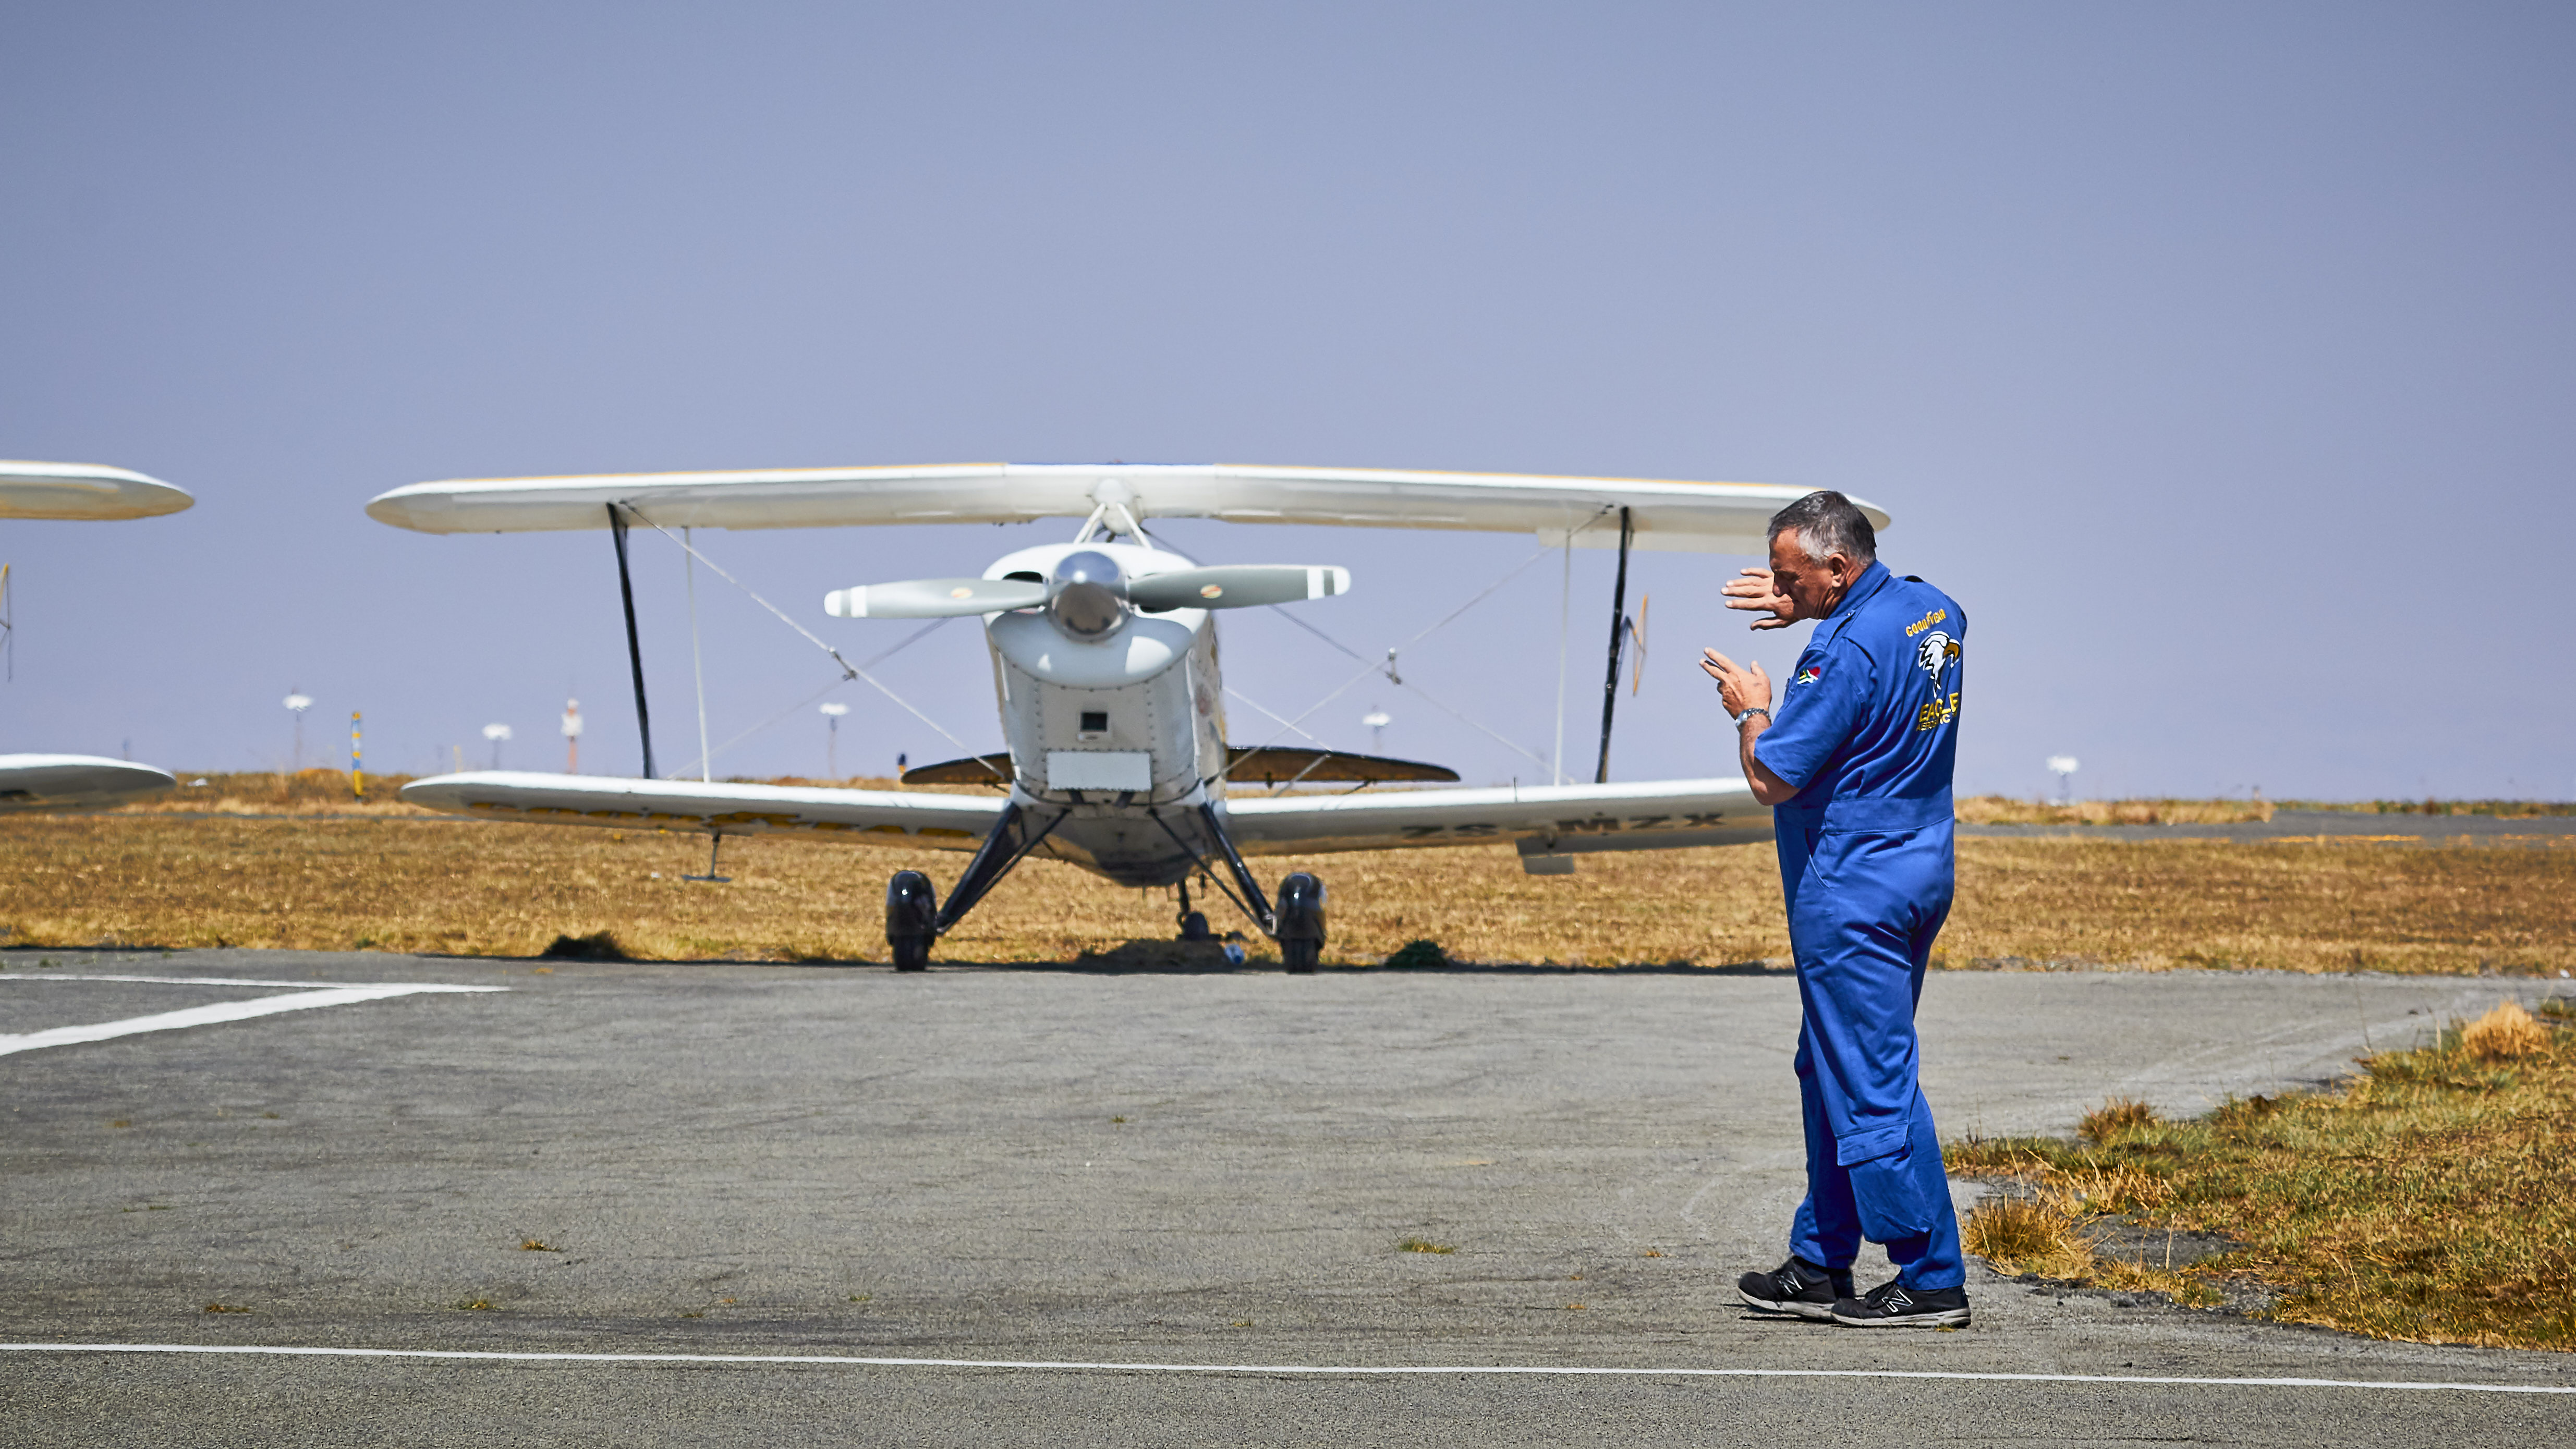 Last images from Rand Airshow